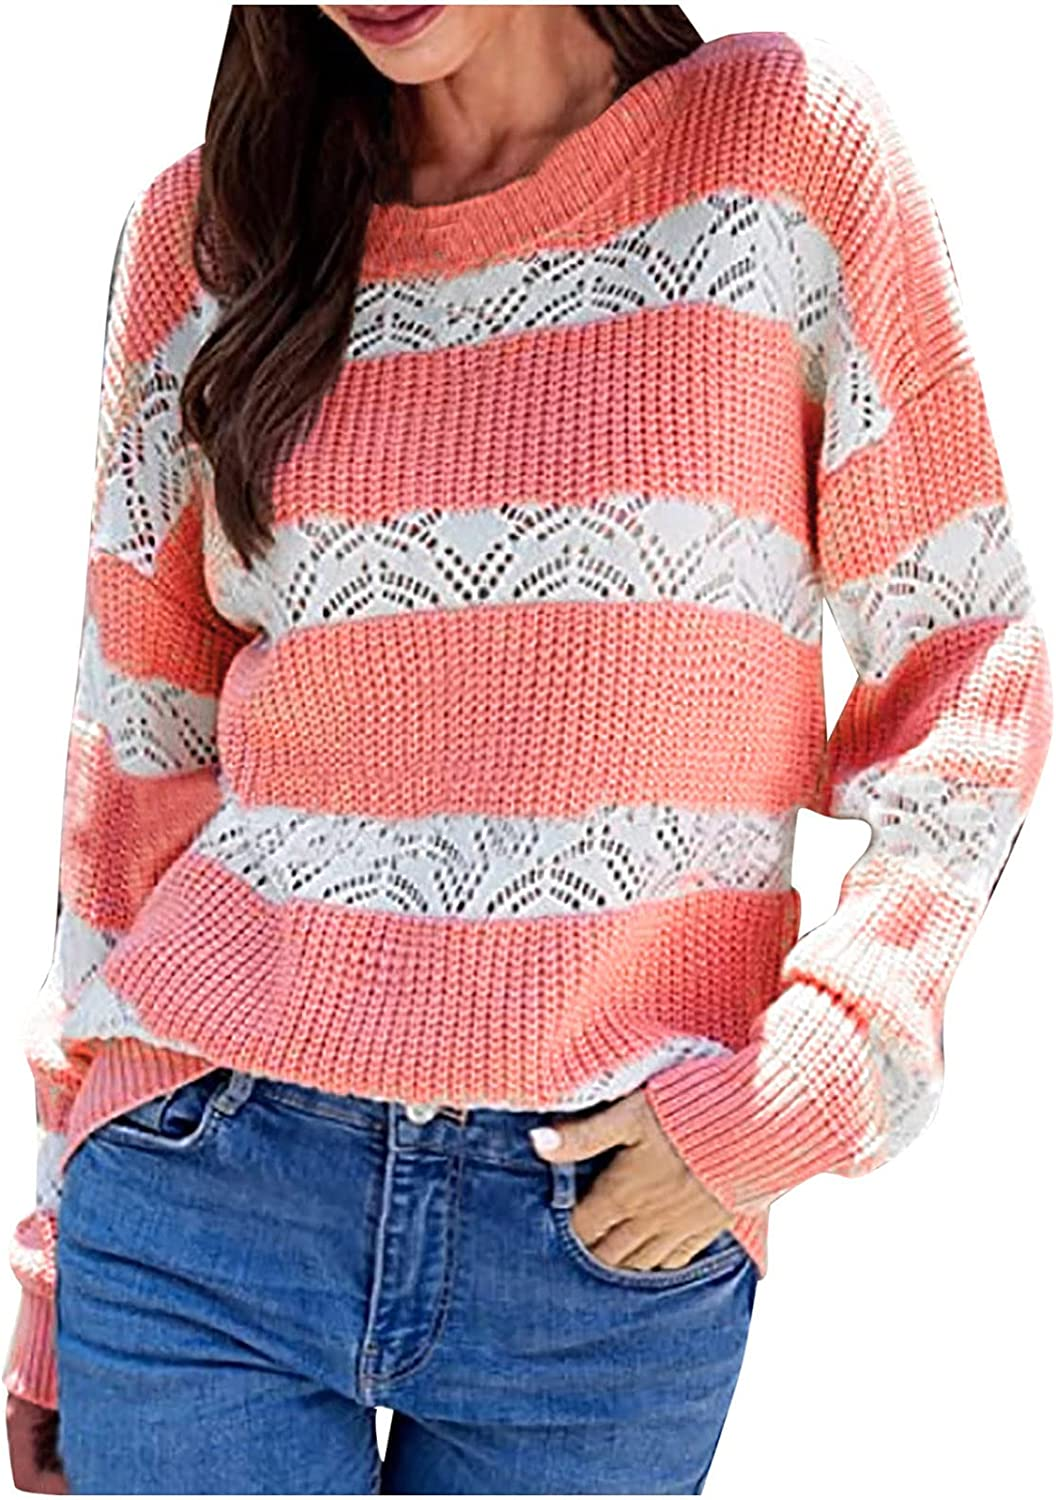 Womens O-Neck Knitted Sweater Striped Color Block Long-Sleeved Hollow Tops Autumn Plus Size Loose Tunics